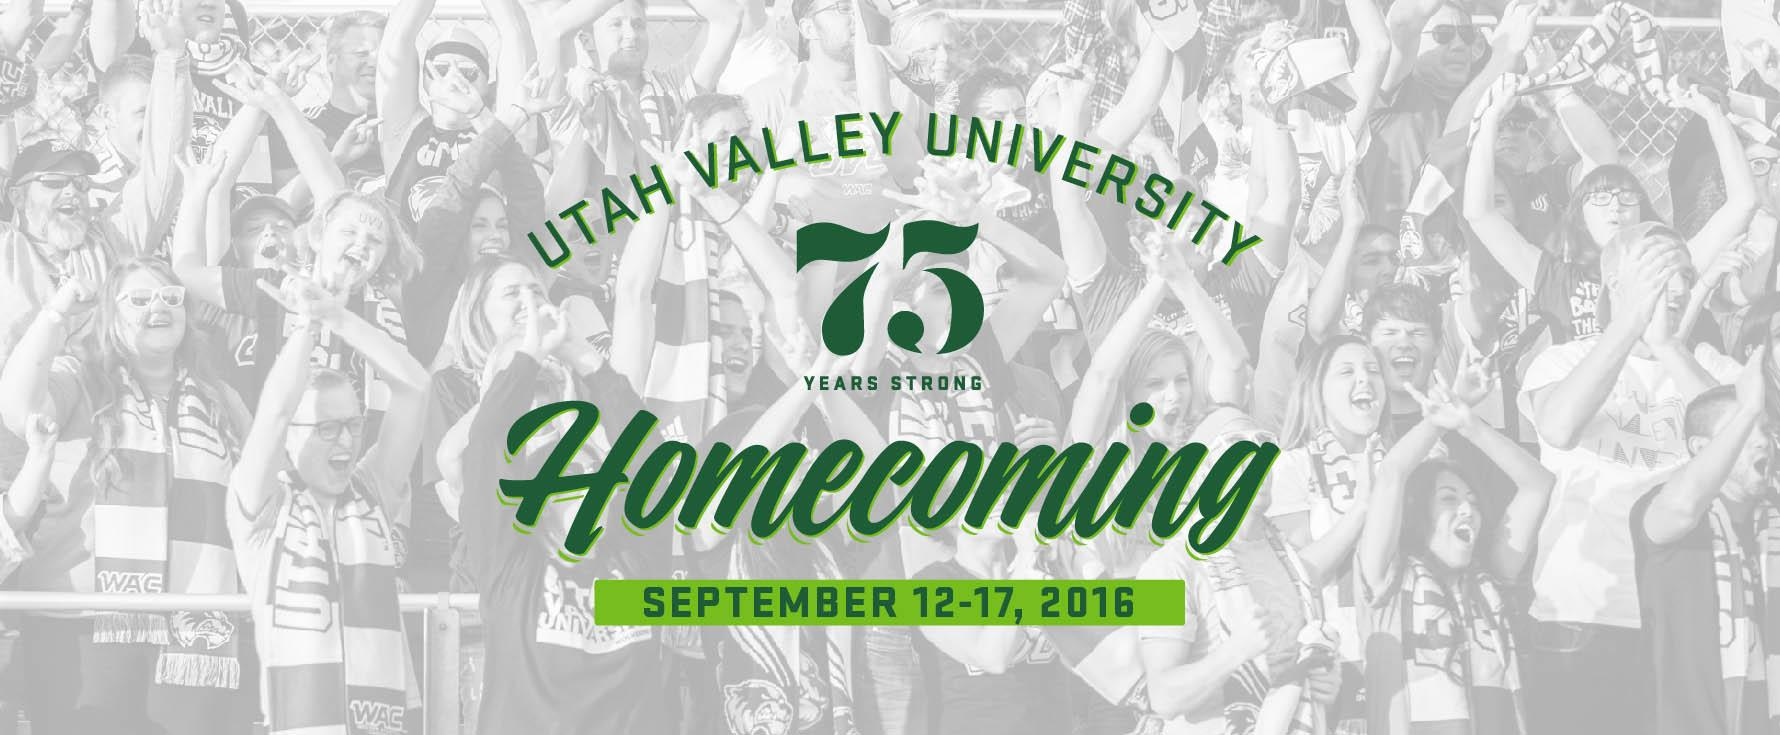 Utah Valley University Homecoming Sept. 12-17, 2016